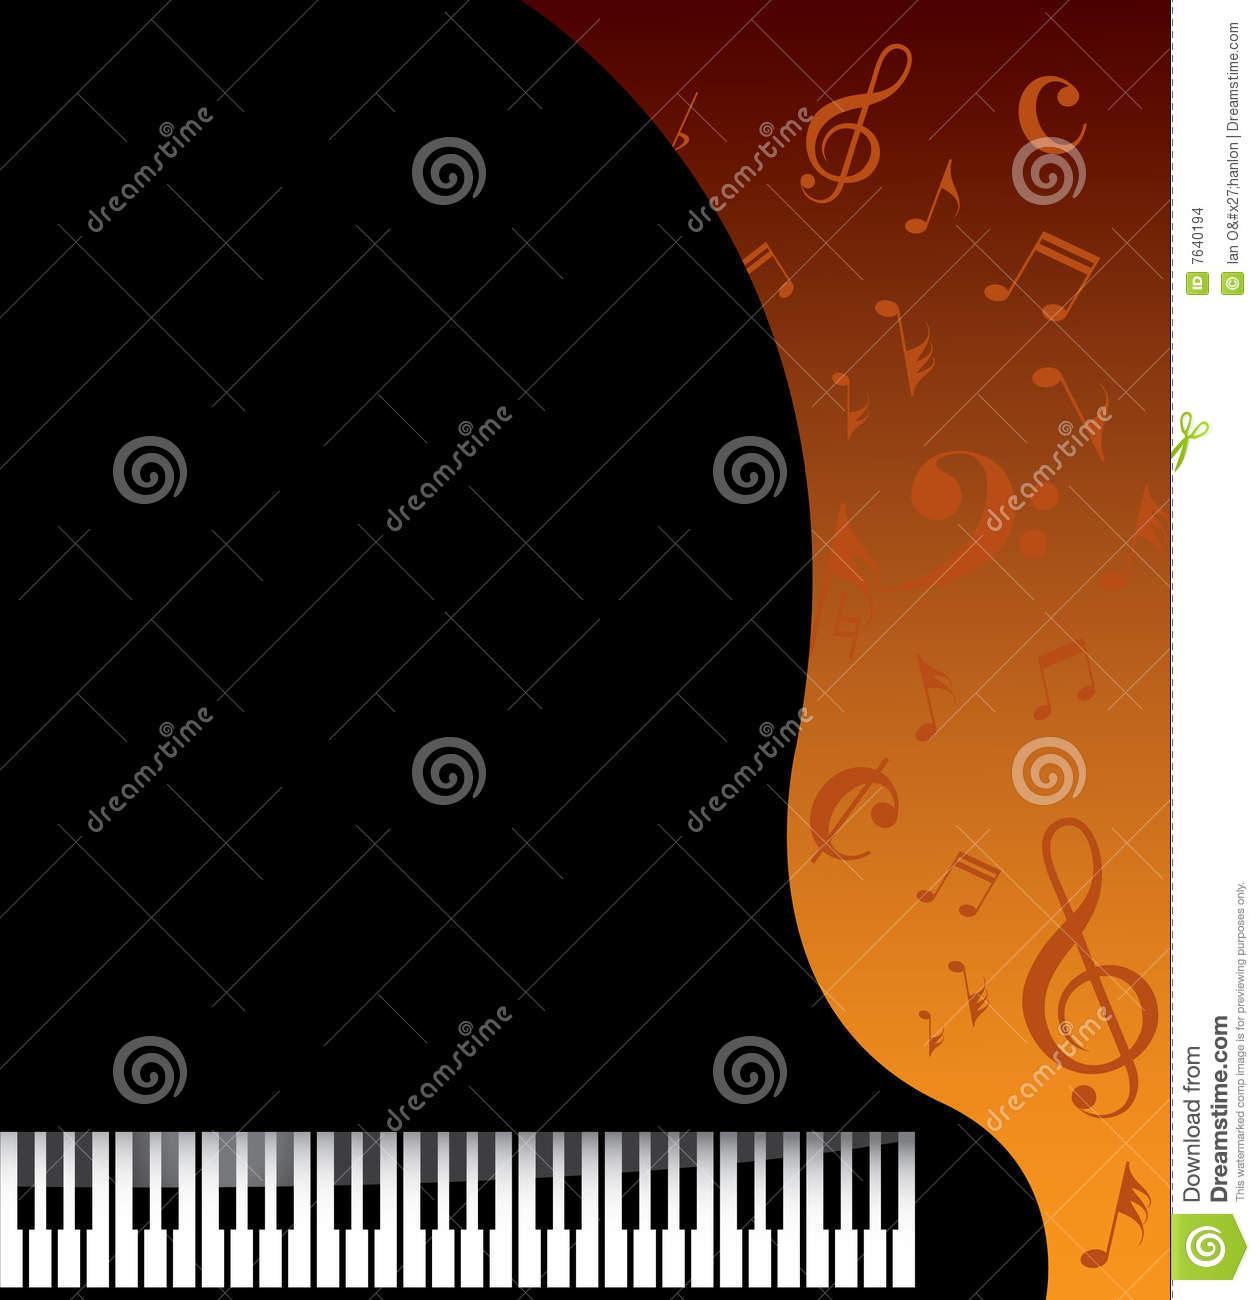 Piano Background Music: Music Background Stock Images